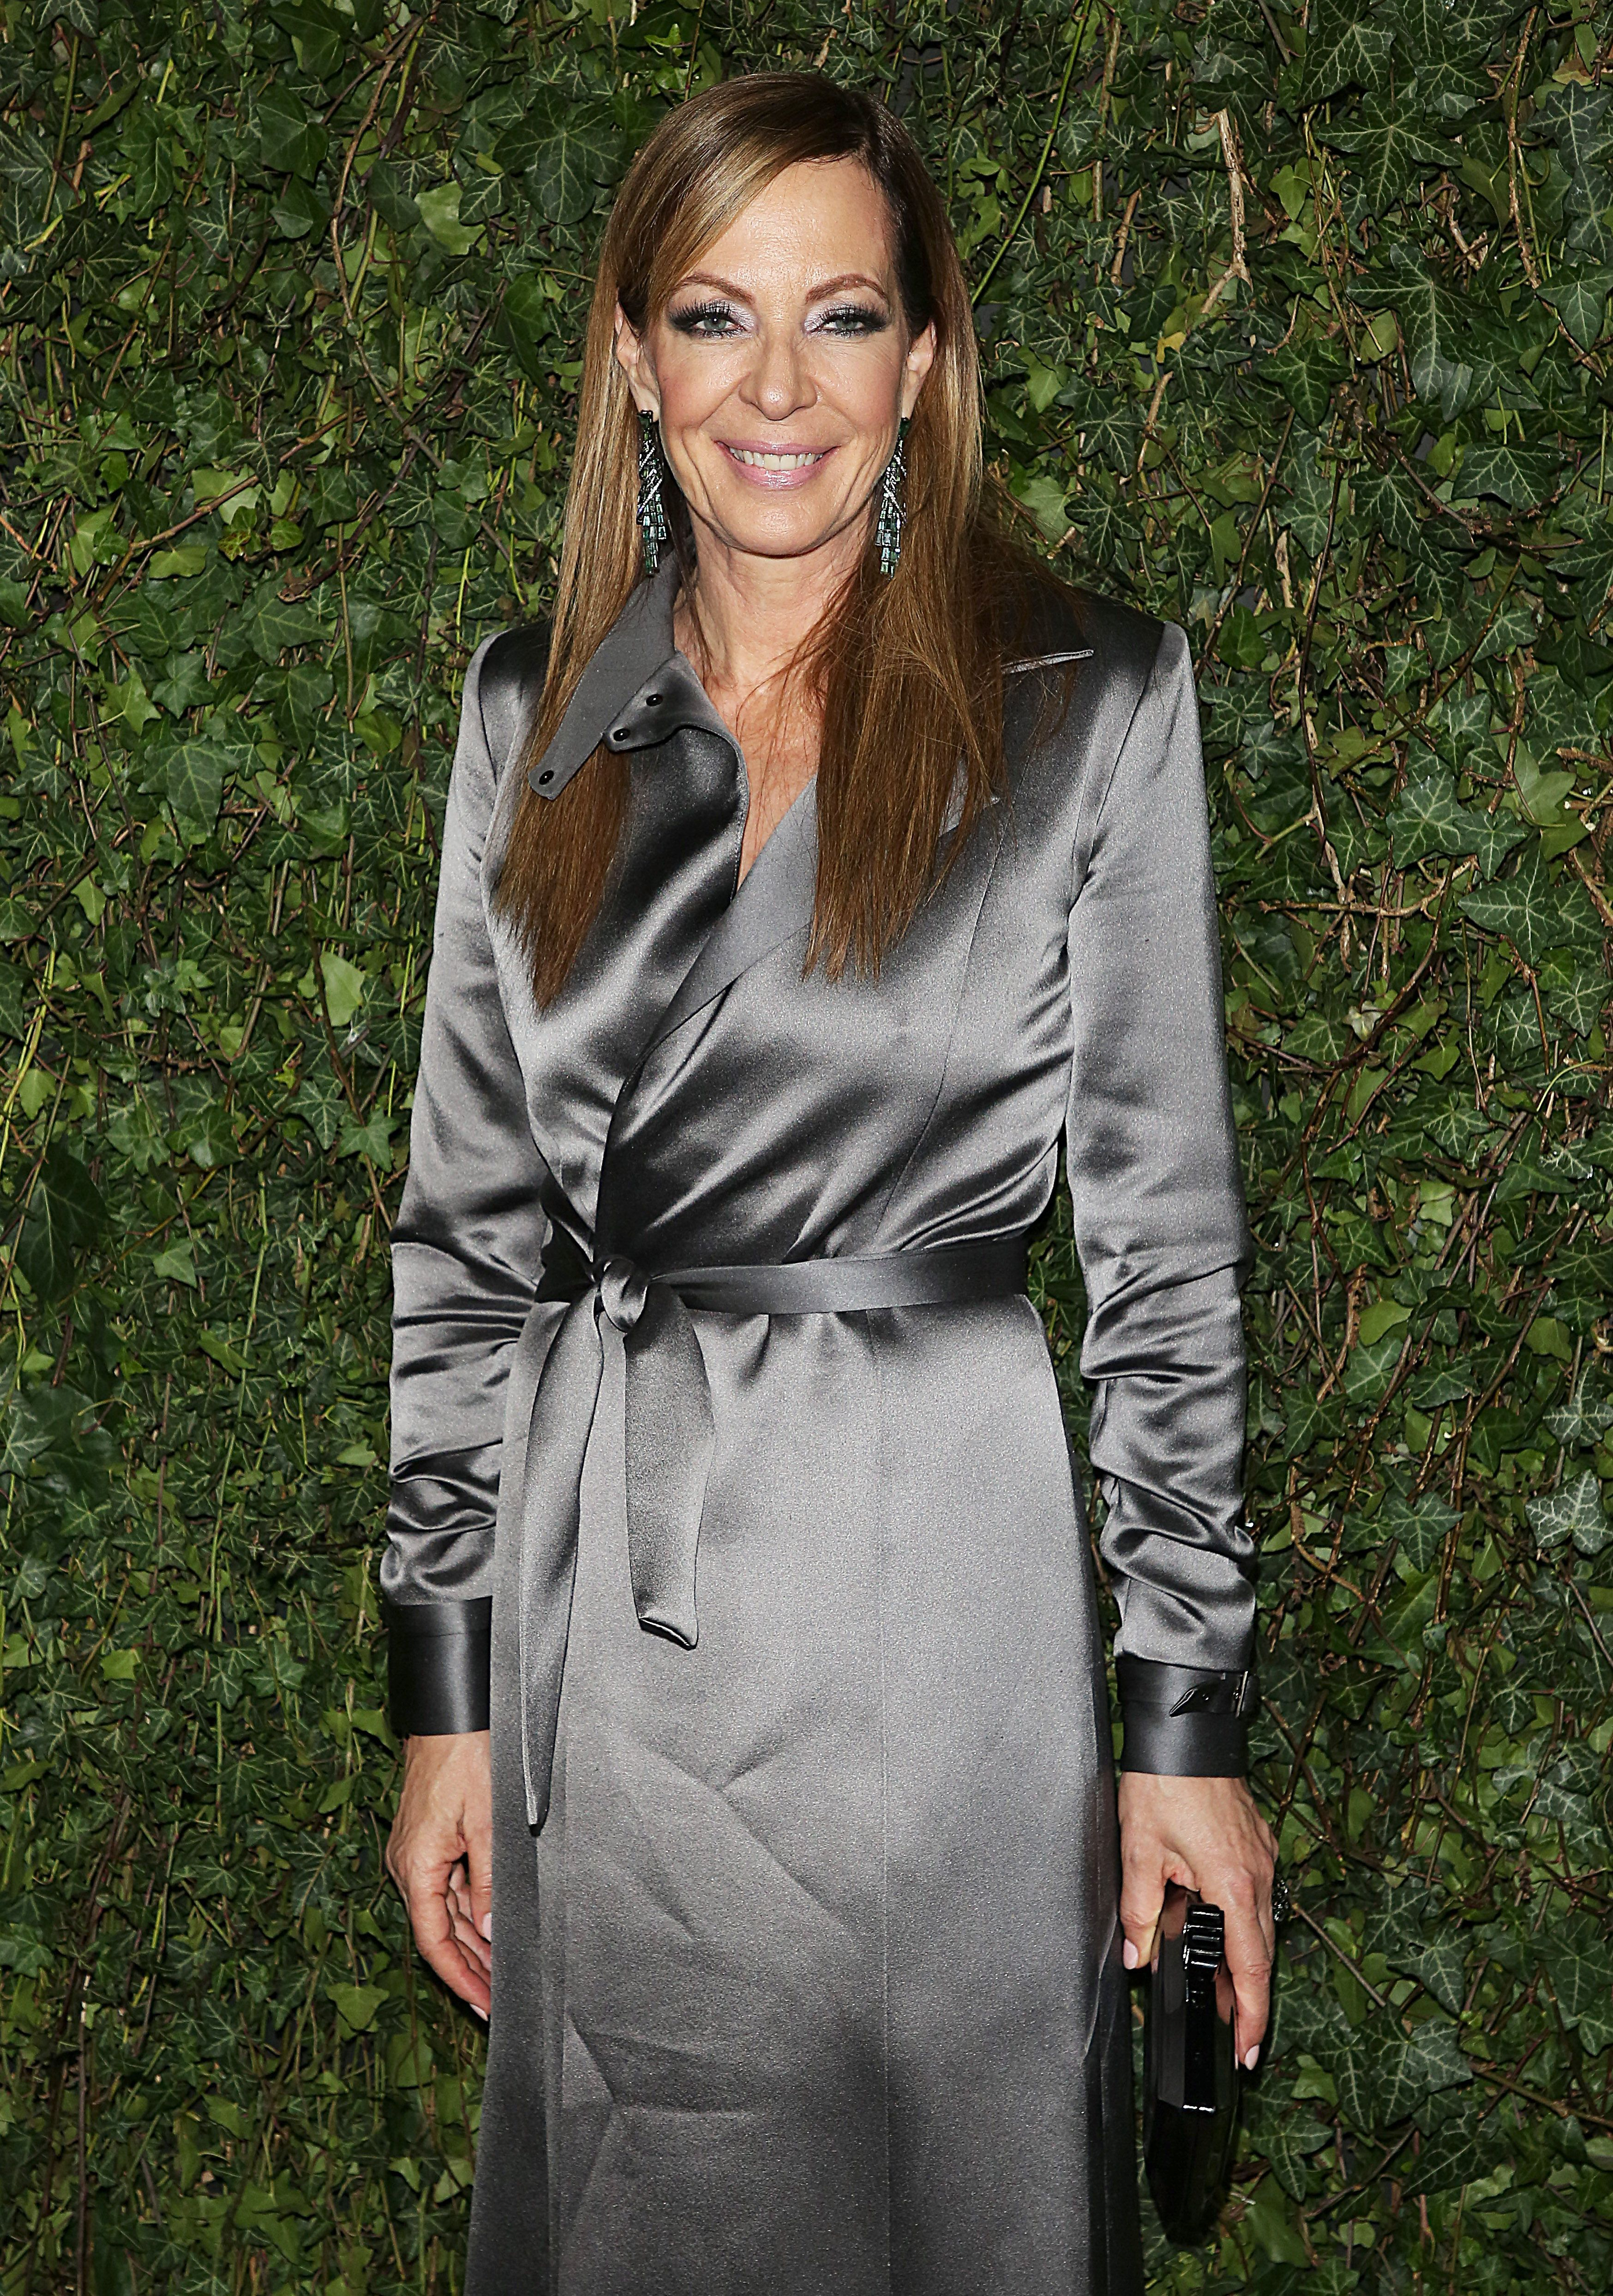 Allison Janney attends the Charles Finch & Chanel Pre BAFTA Party in London on Feb. 17, 2018.